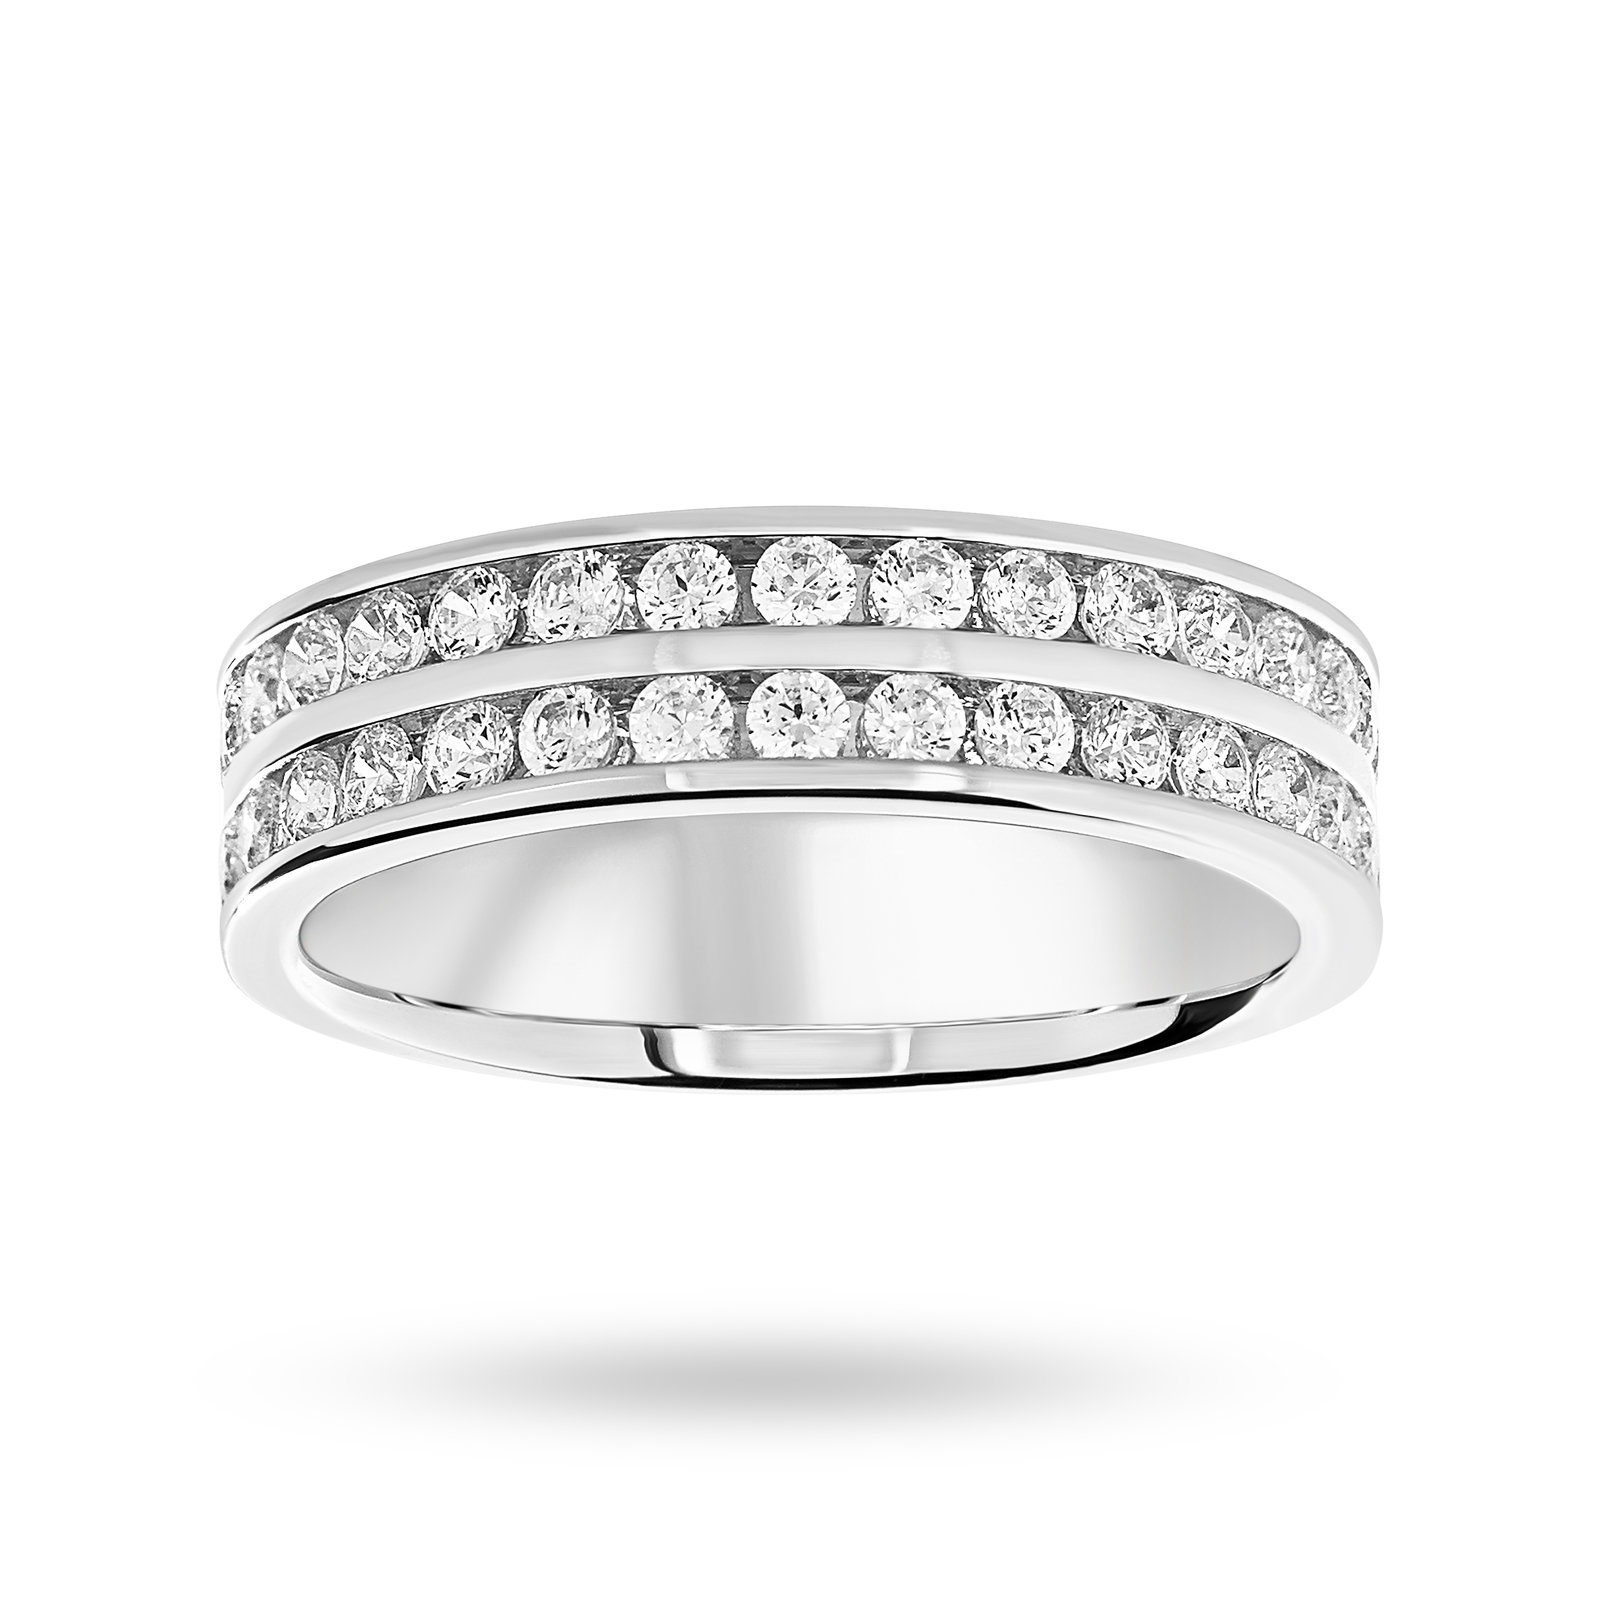 18ct White Gold 0.75ct 2 Row Half Eternity Ring - Ring Size J